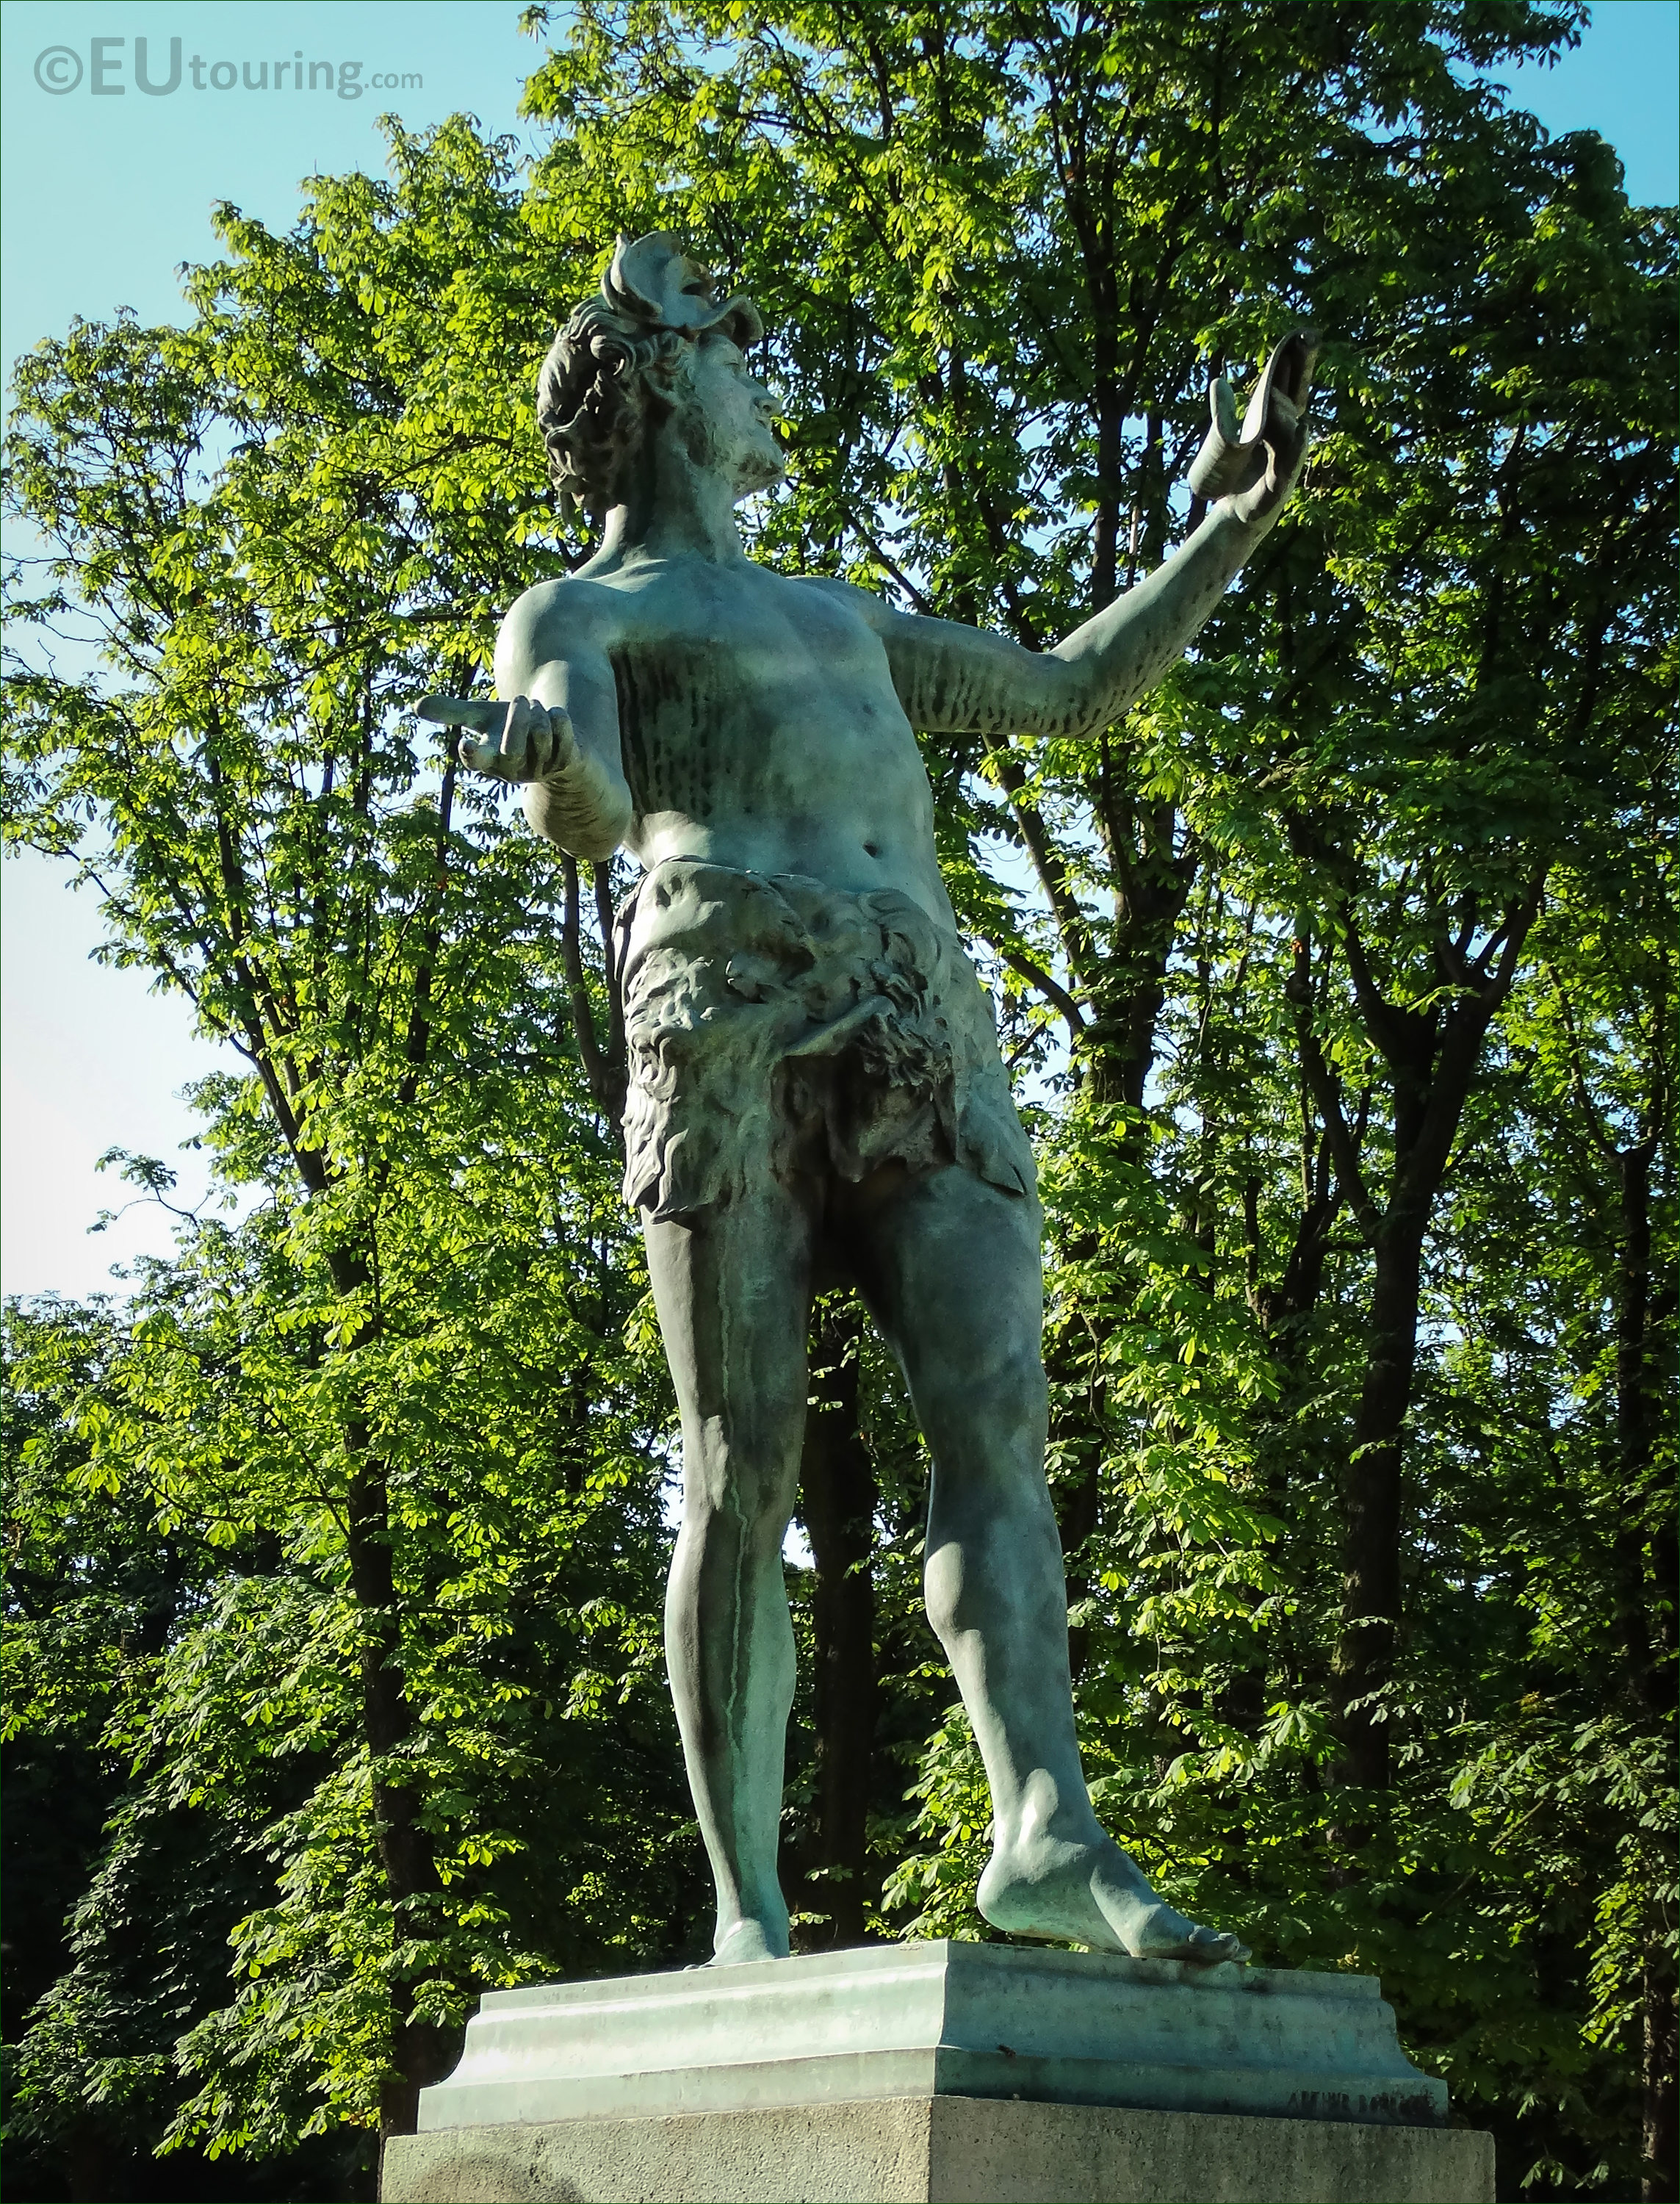 Photos of l 39 acteur grec statue inside luxembourg gardens page 215 - Bourgeois house definition ...